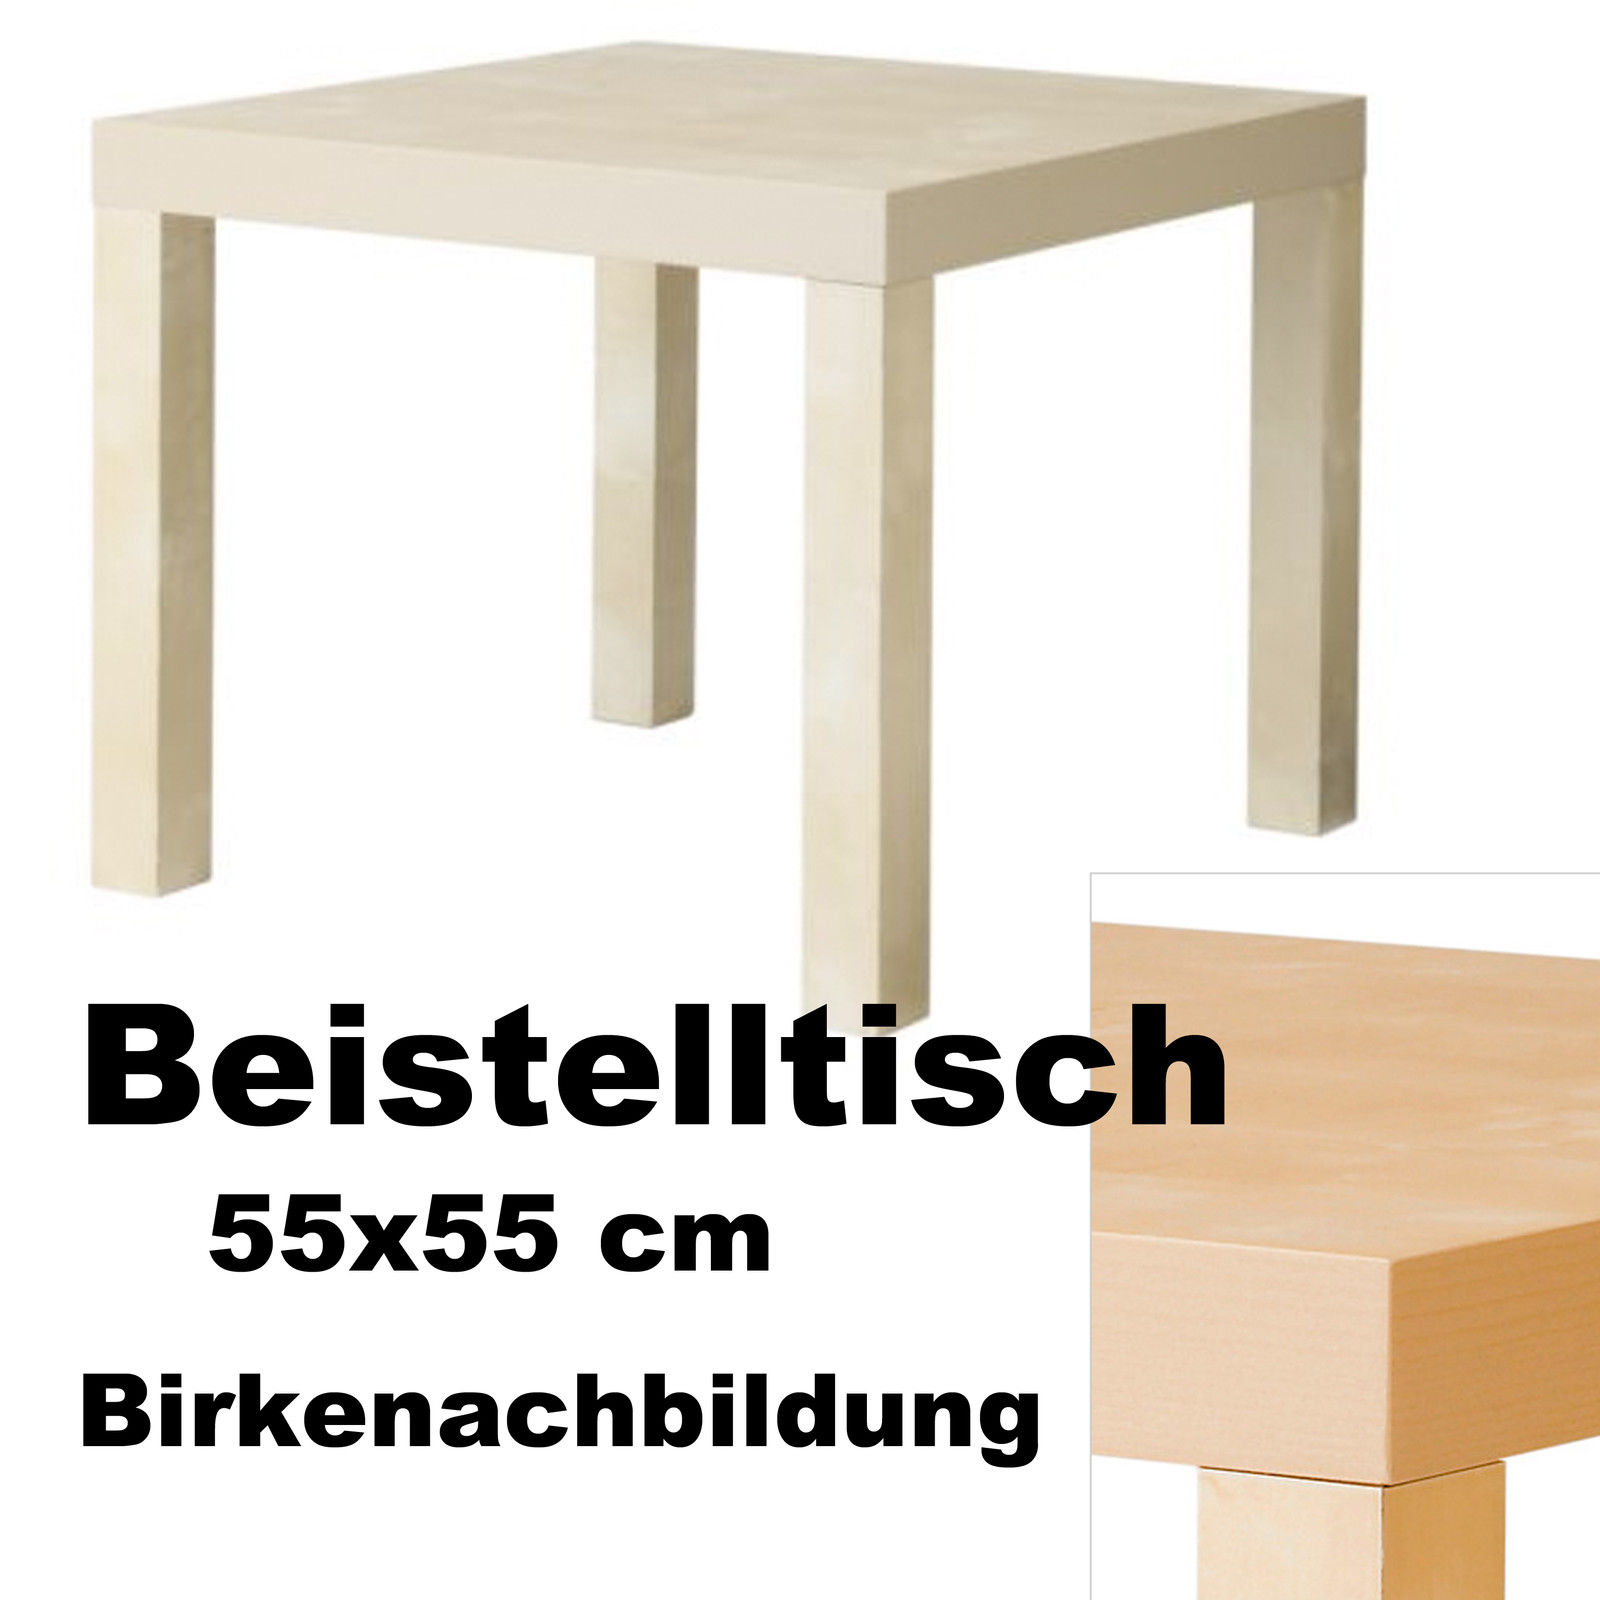 ikea couchtisch beistelltisch tisch abstelltisch deko birke 55x55cm neu ovp traumfabrik xxl. Black Bedroom Furniture Sets. Home Design Ideas